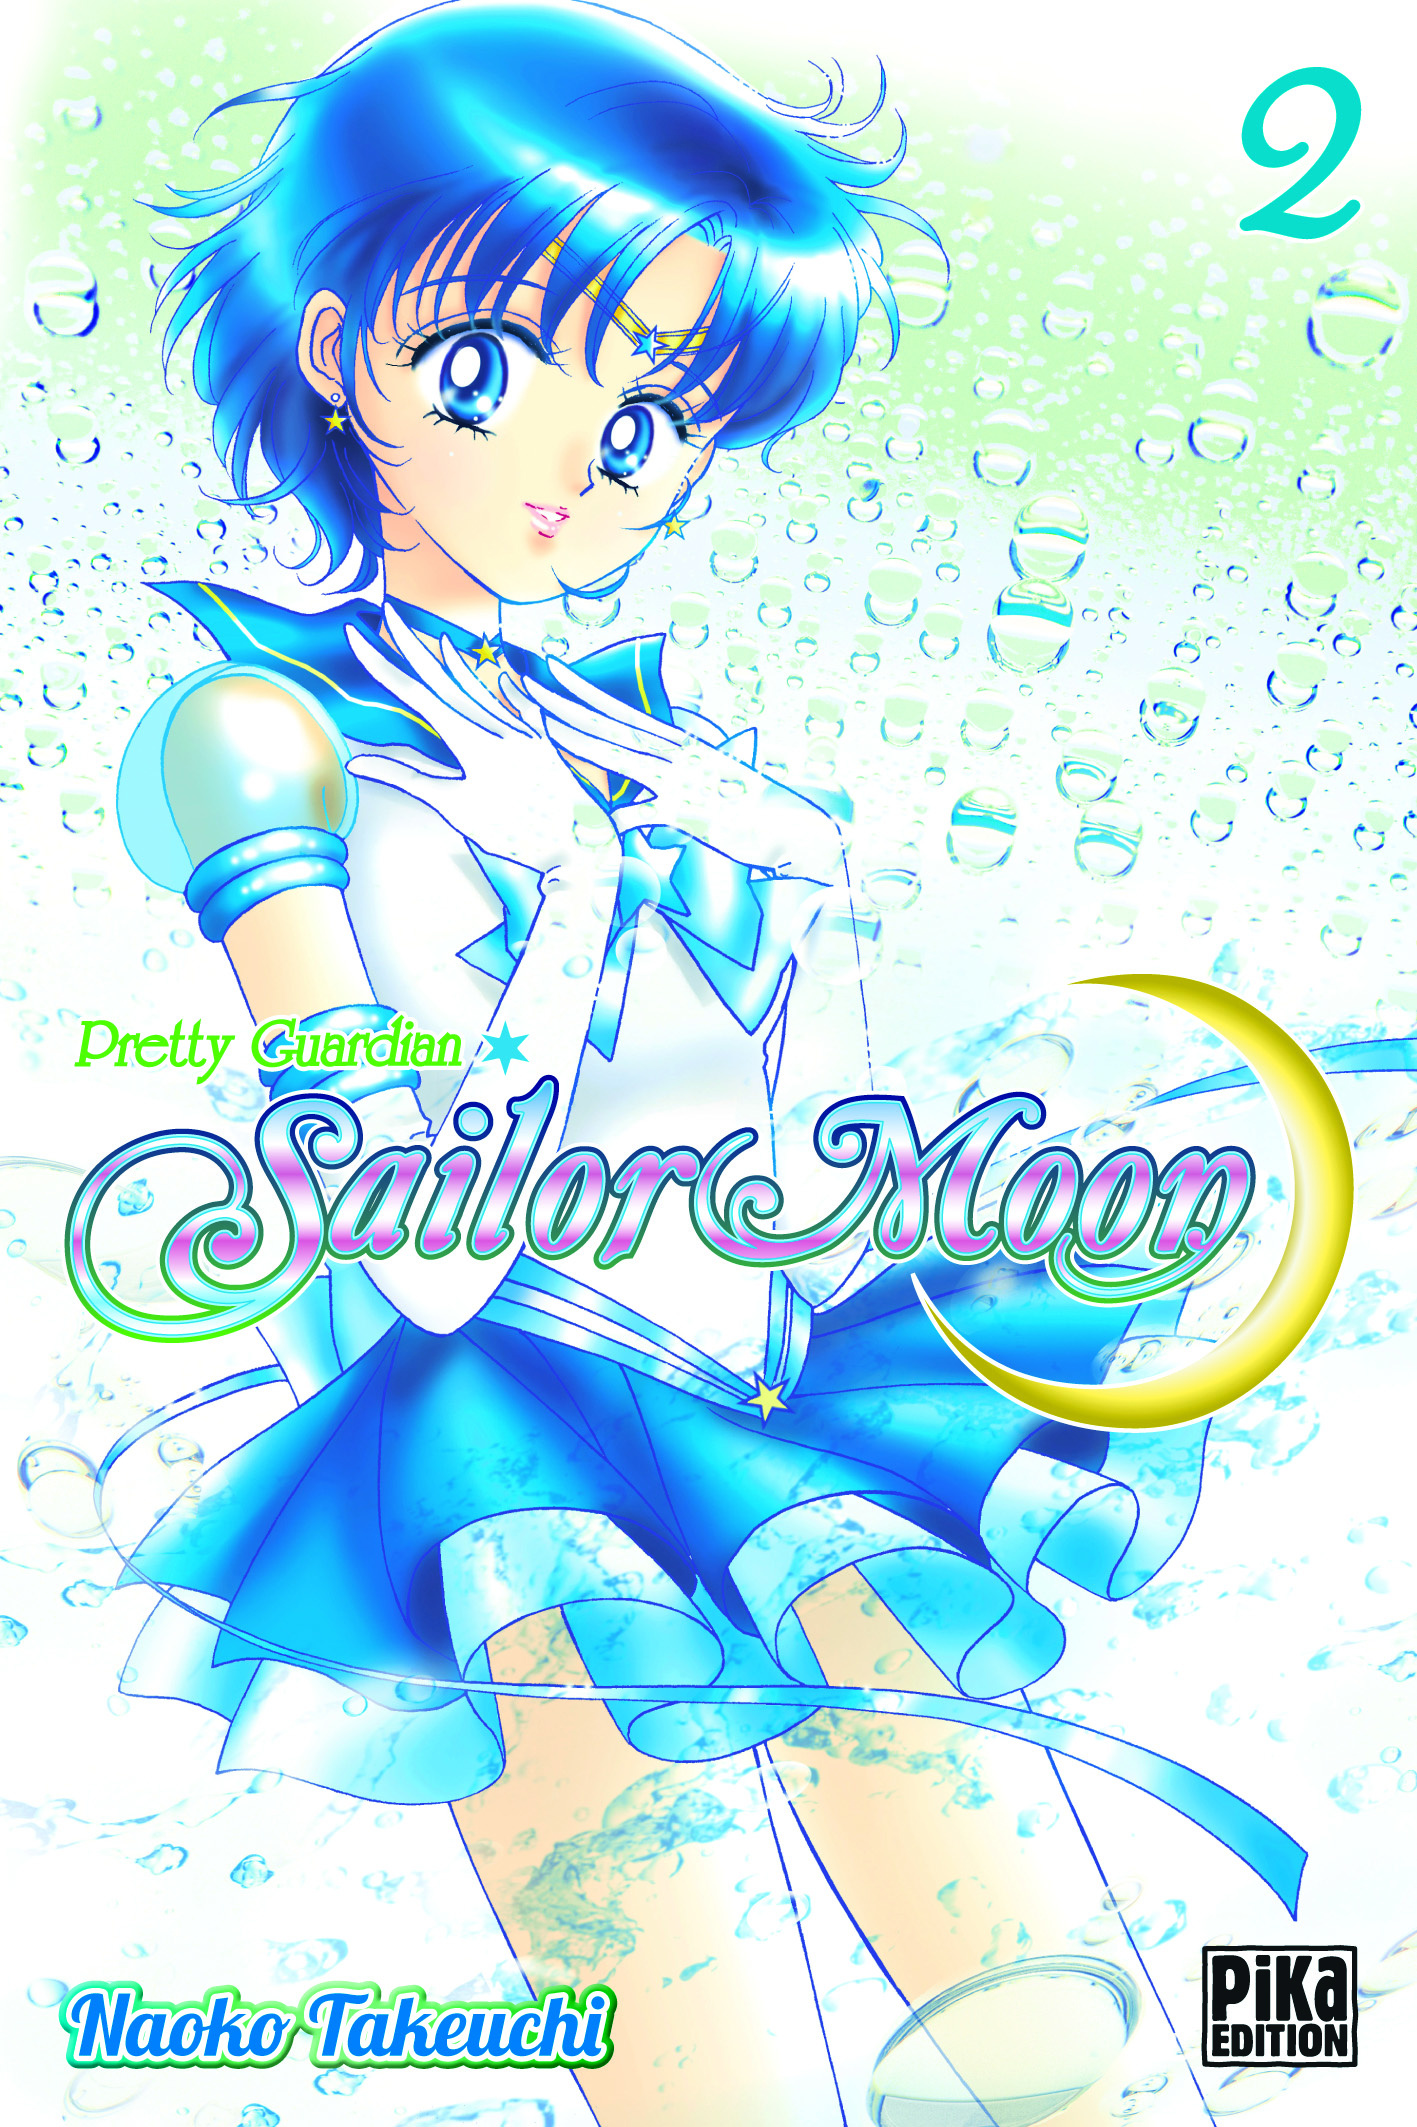 Pretty Guardian Sailor Moon 2. (könyv) - Naoko Takeuchi | Rukkola.hu